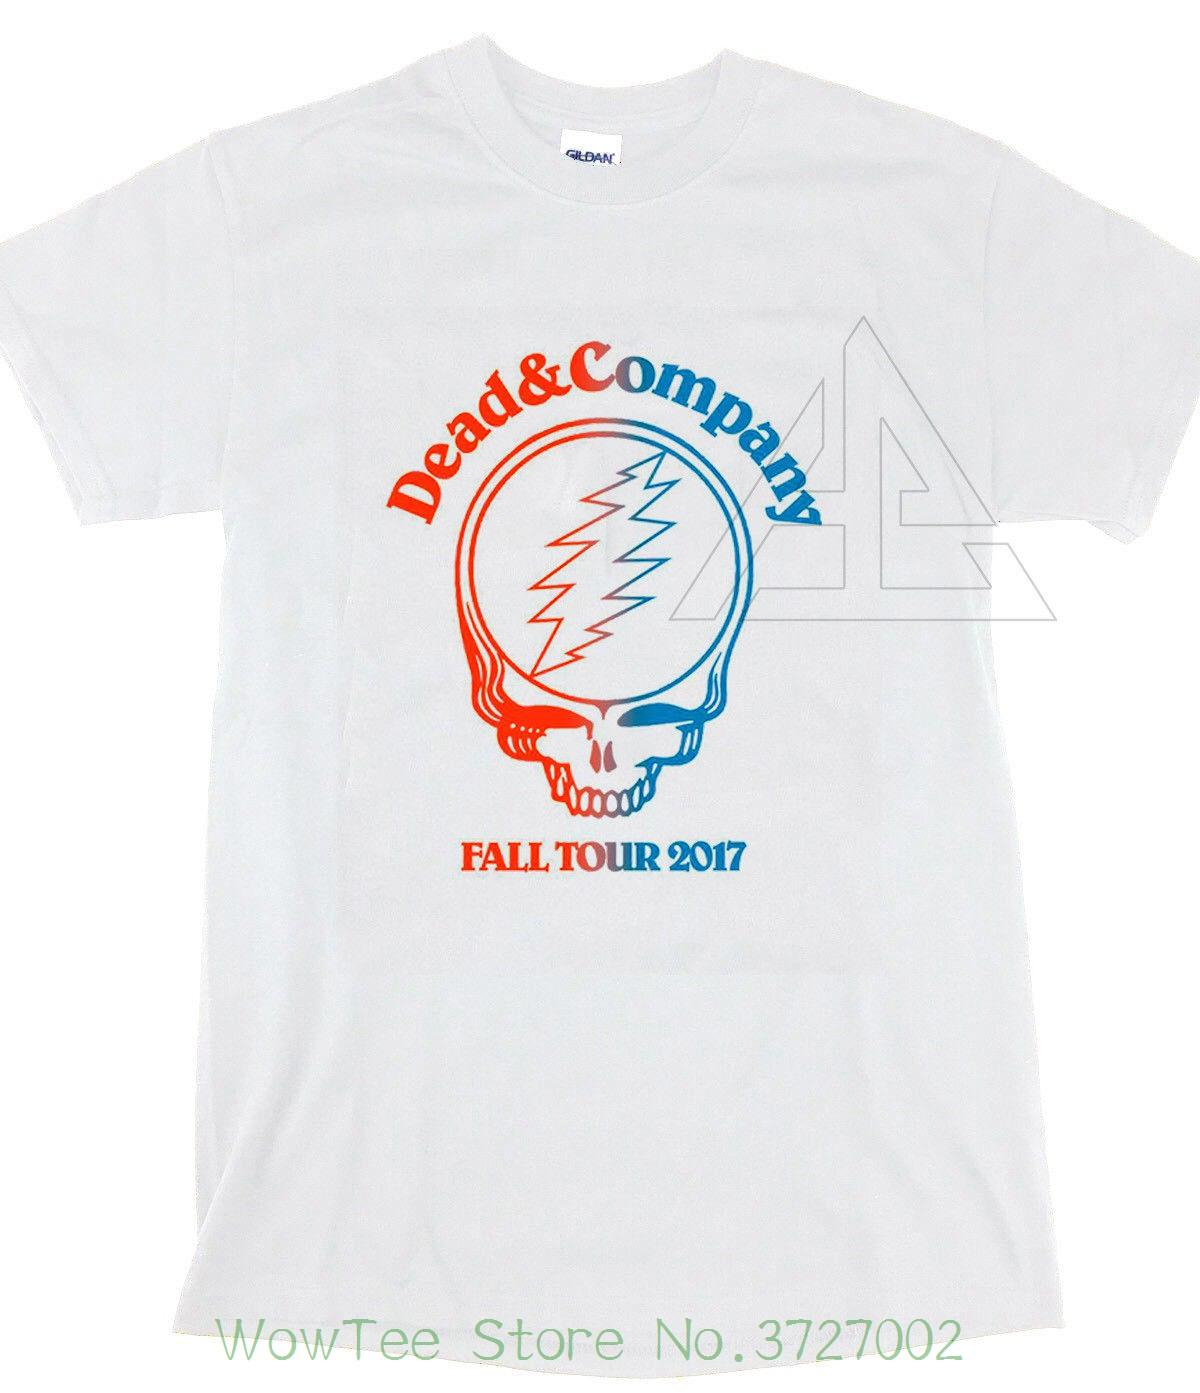 f011ec335cc   Company Tshirt Fall Tour November 17 2017 Td Garden Boston S - 3xl Male  Battery Funny Cotton Tops Online with  18.15 Piece on Wowteestore s Store  ...